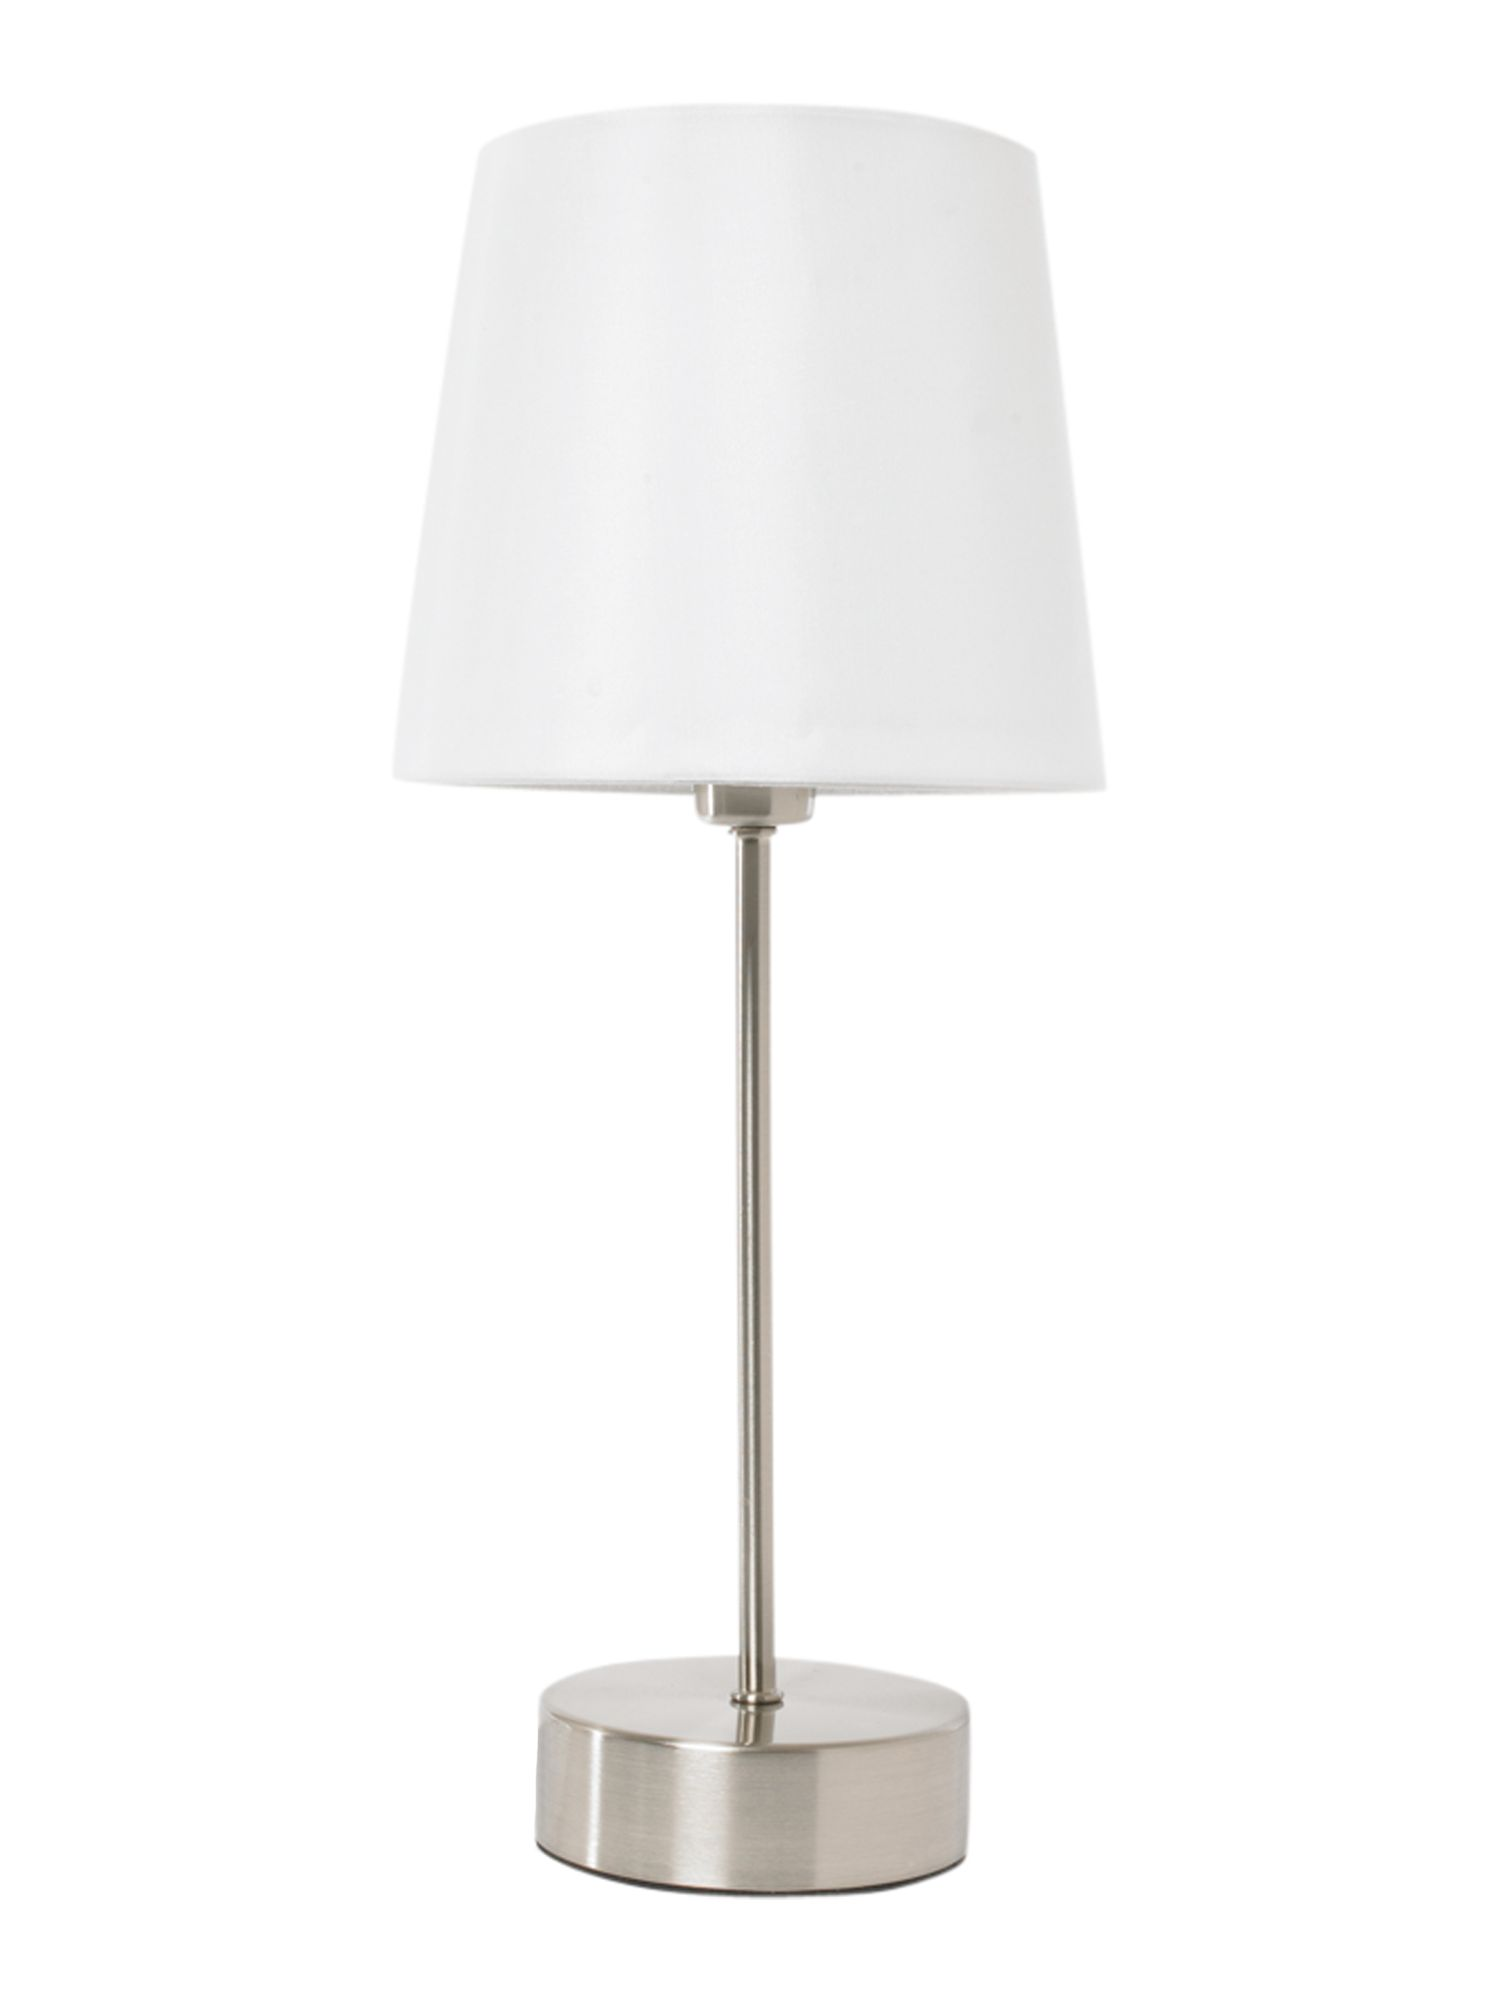 Bathroom dimensions - Linea Zoe White Touch Table Lamp 144735729 Review